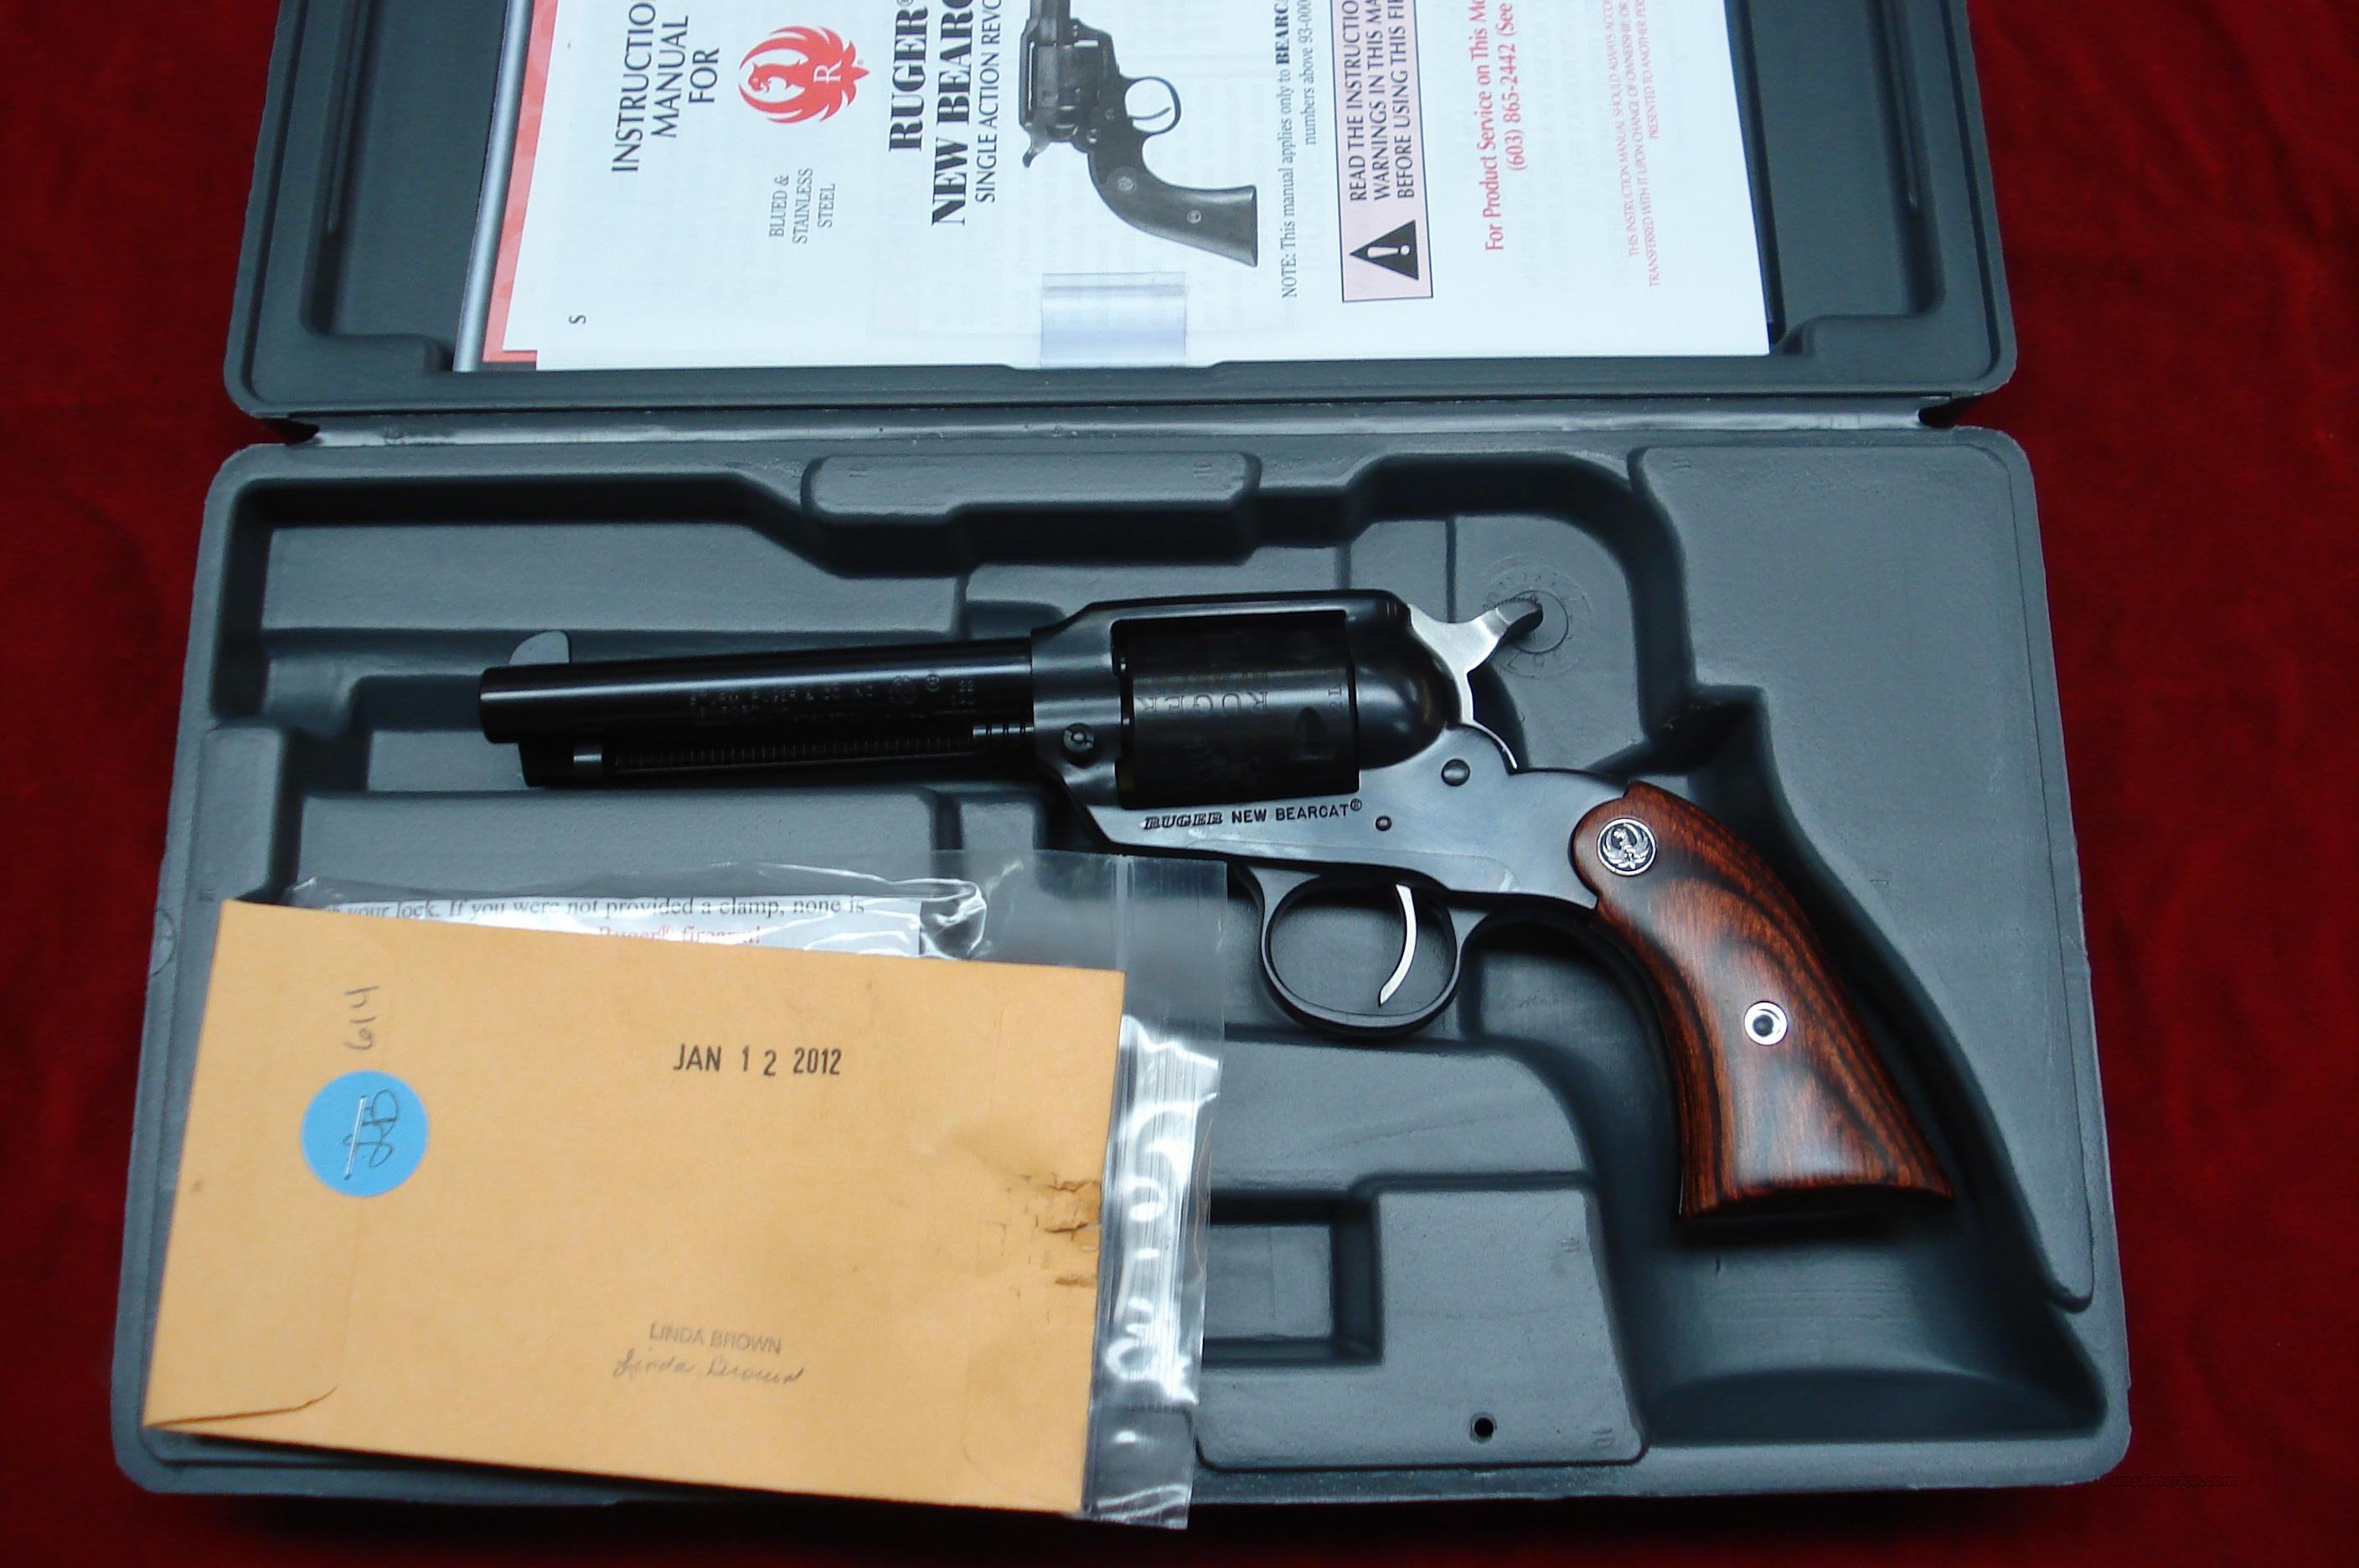 RUGER BEARCAT 22CAL. BLUE NEW (SBC-4)  (00912)  Guns > Pistols > Ruger Single Action Revolvers > Bearcat